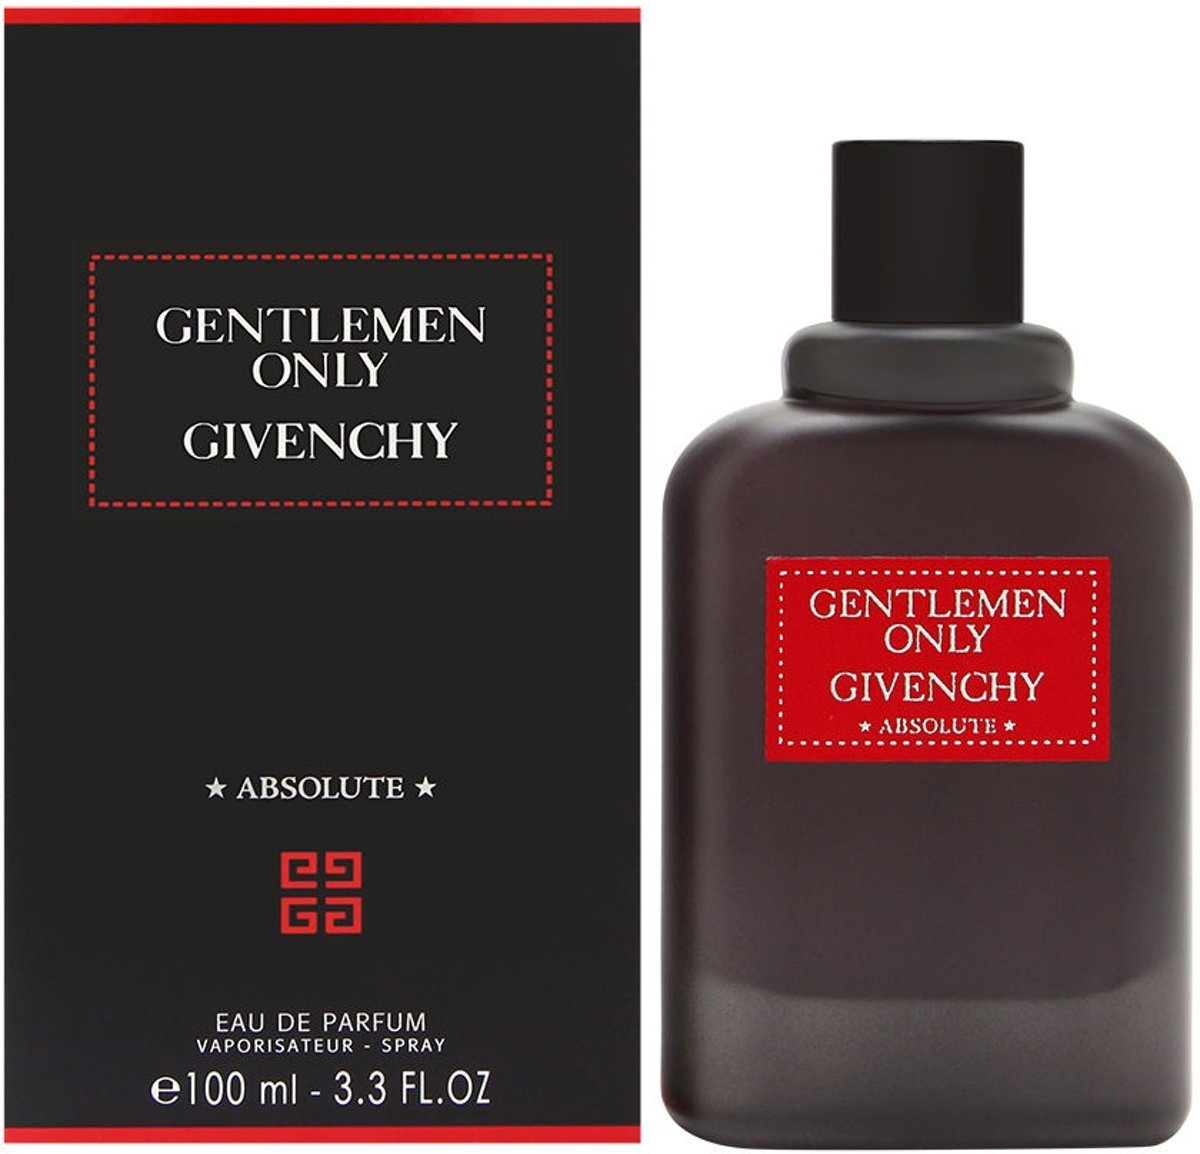 Givenchy Gentlemen Only Absolute - 50 ml - eau de parfum